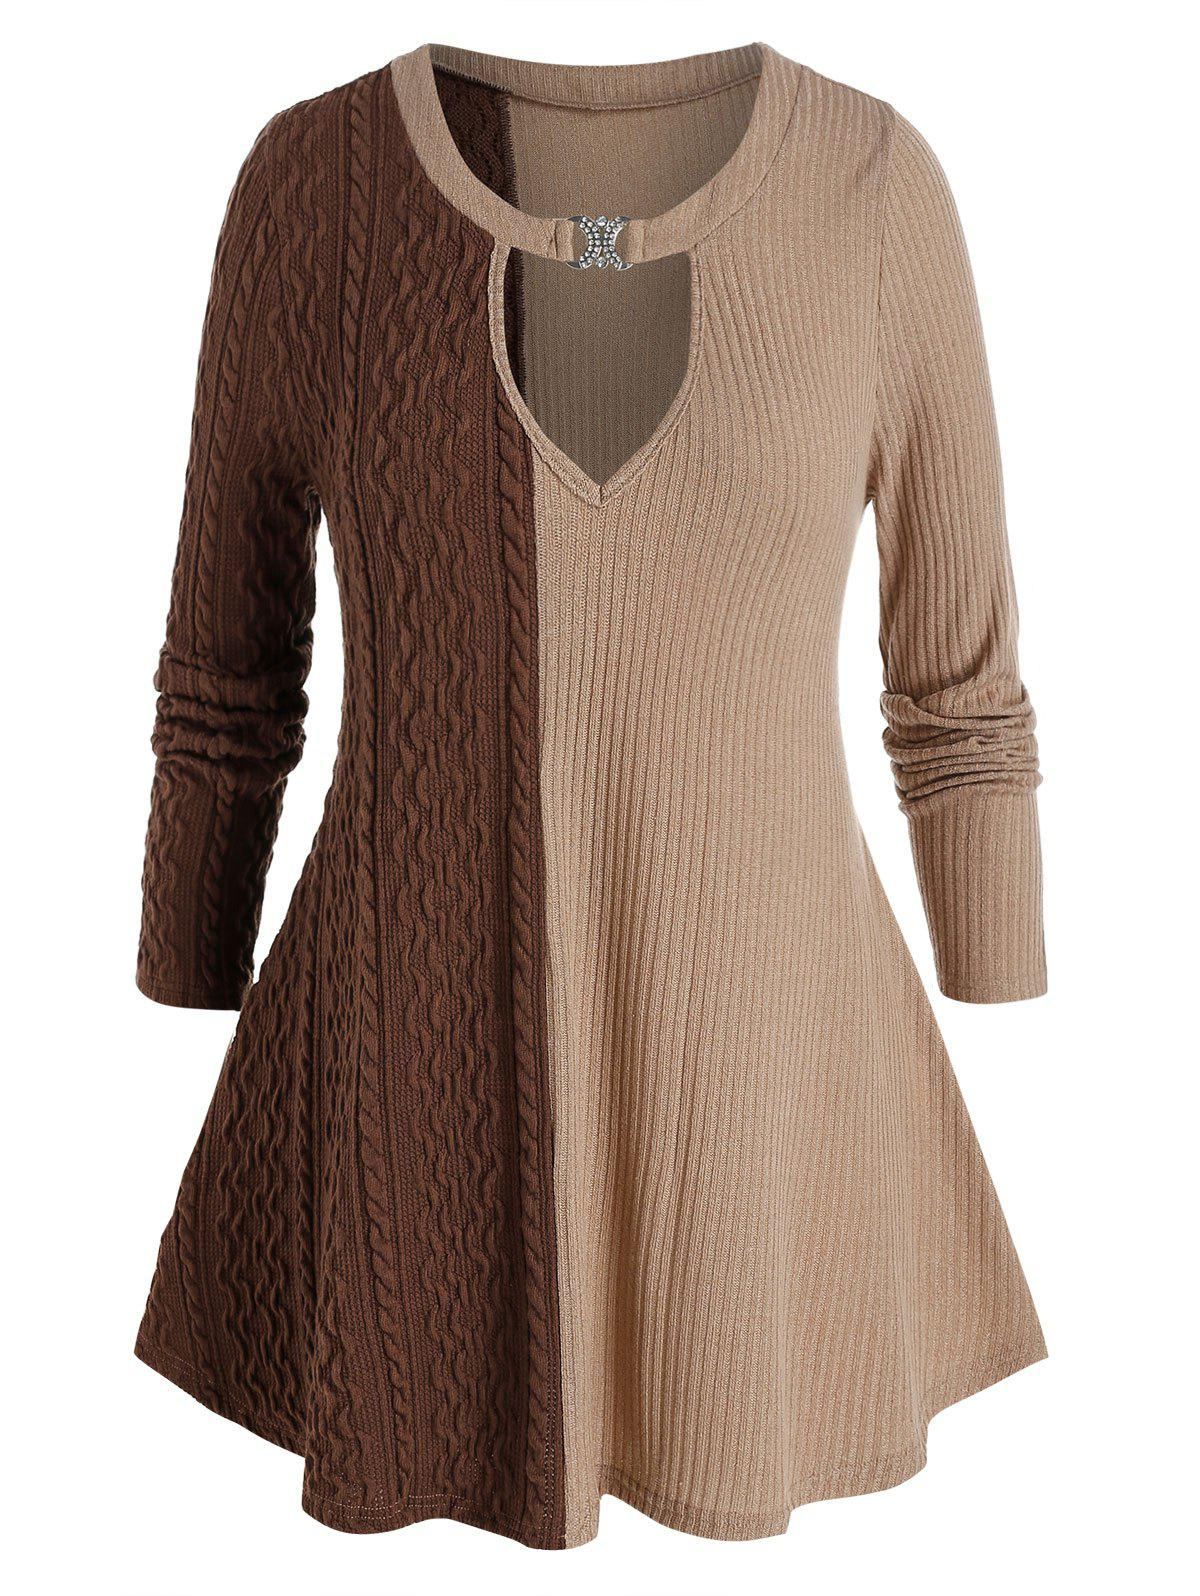 Unique Plus Size Two Tone Keyhole Cable Knit Tunic Sweater